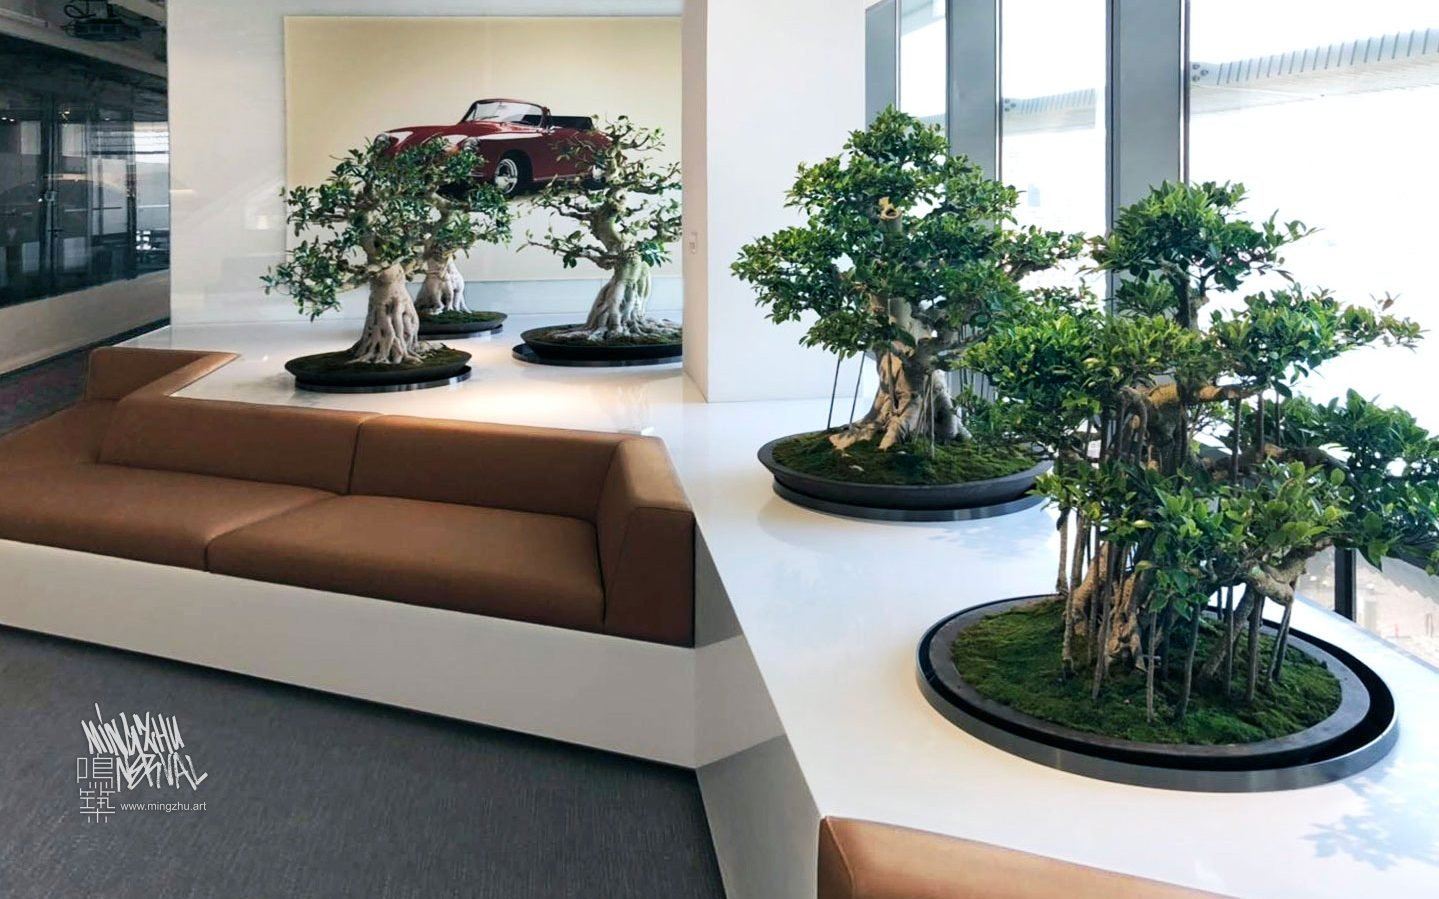 At Mingzhu Nerval, we thrive at creating the most beautiful vertical gardens in the world. For Porsche, we created a special living design - Shanghai, 2019.